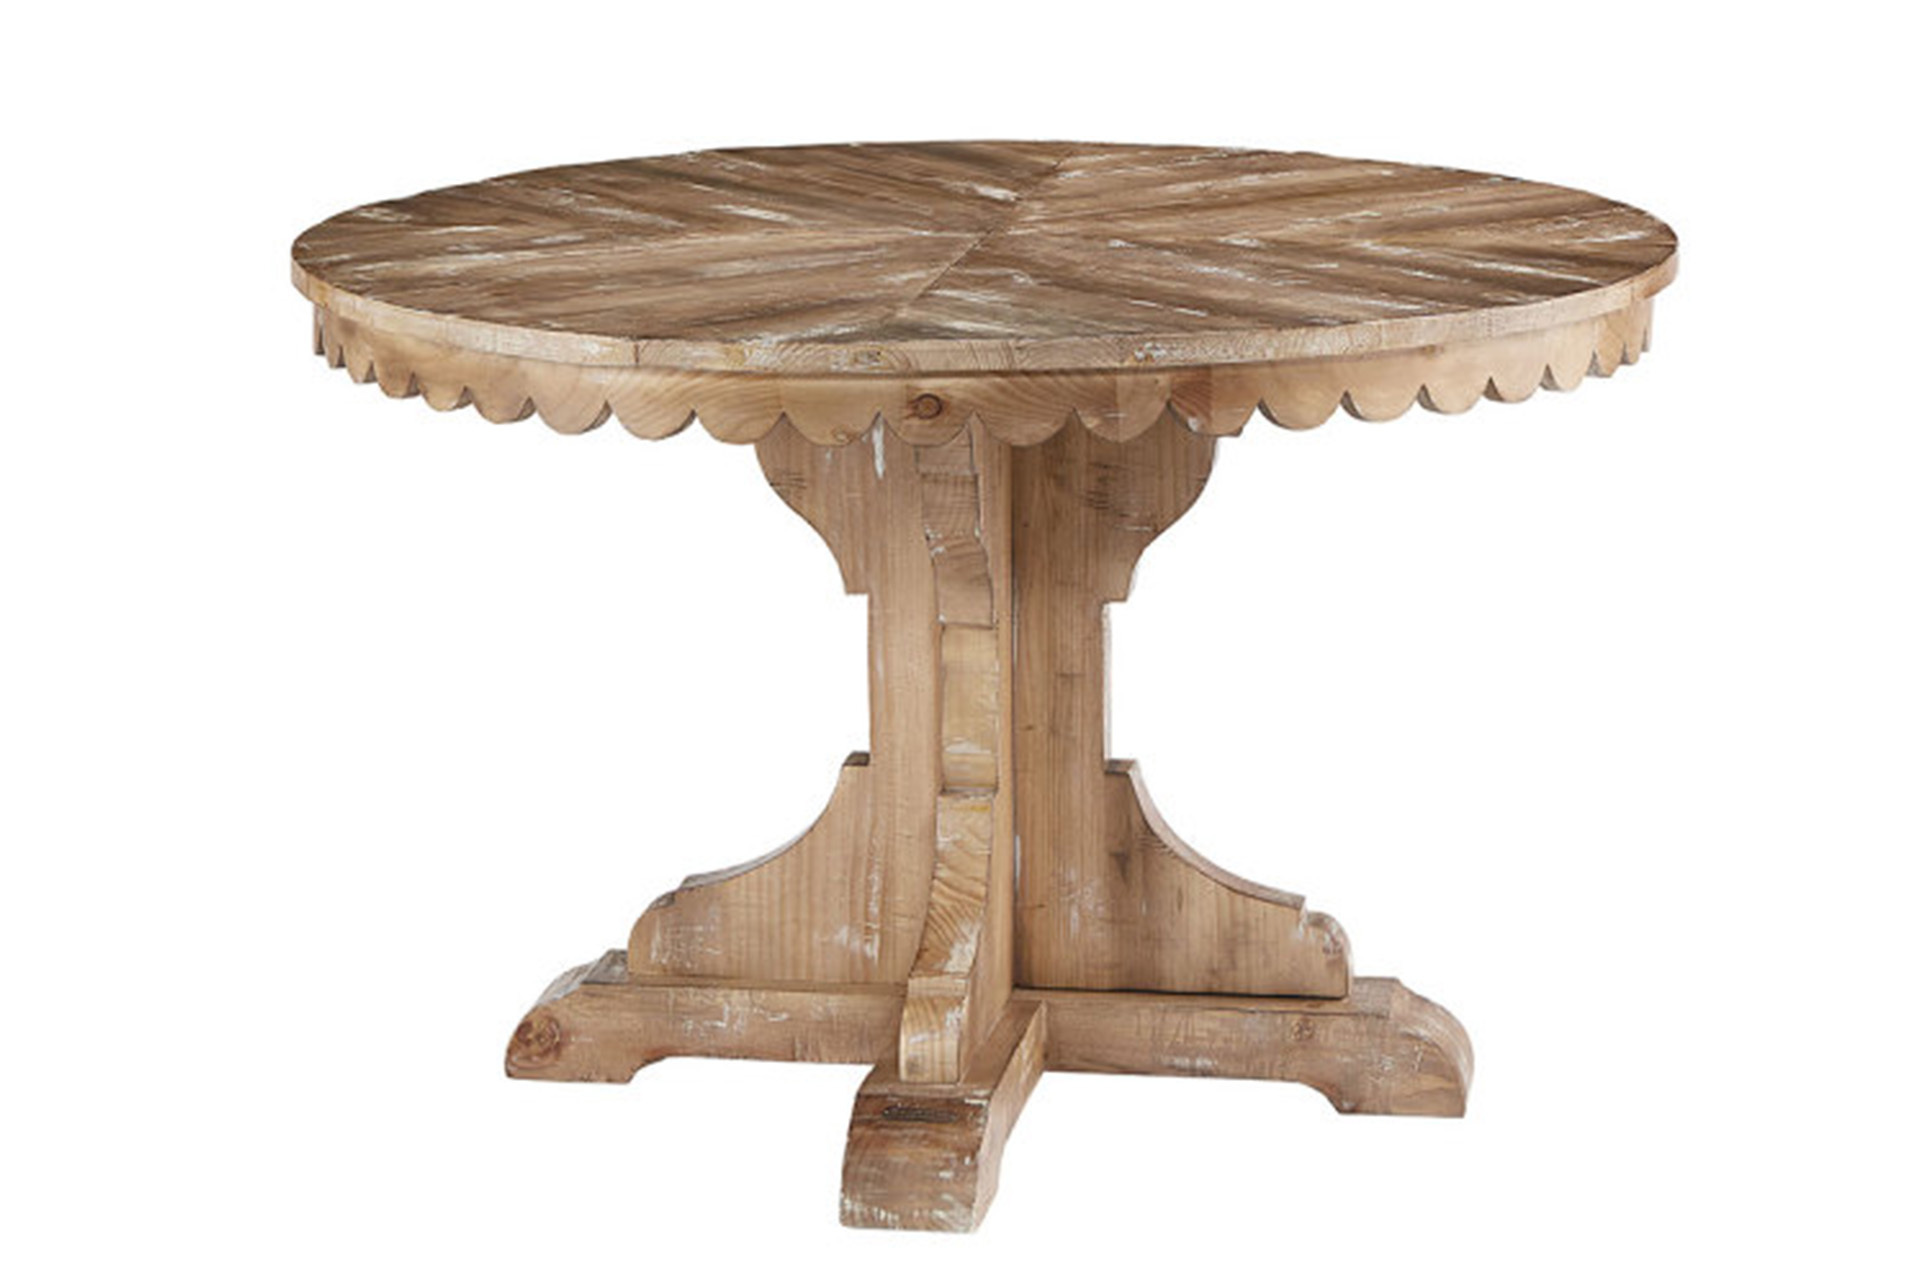 Dining table Pool Table Magnolia Home Top Tier Round Dining Table By Joanna Gaines Living Spaces Living Spaces Magnolia Home Top Tier Round Dining Table By Joanna Gaines Living